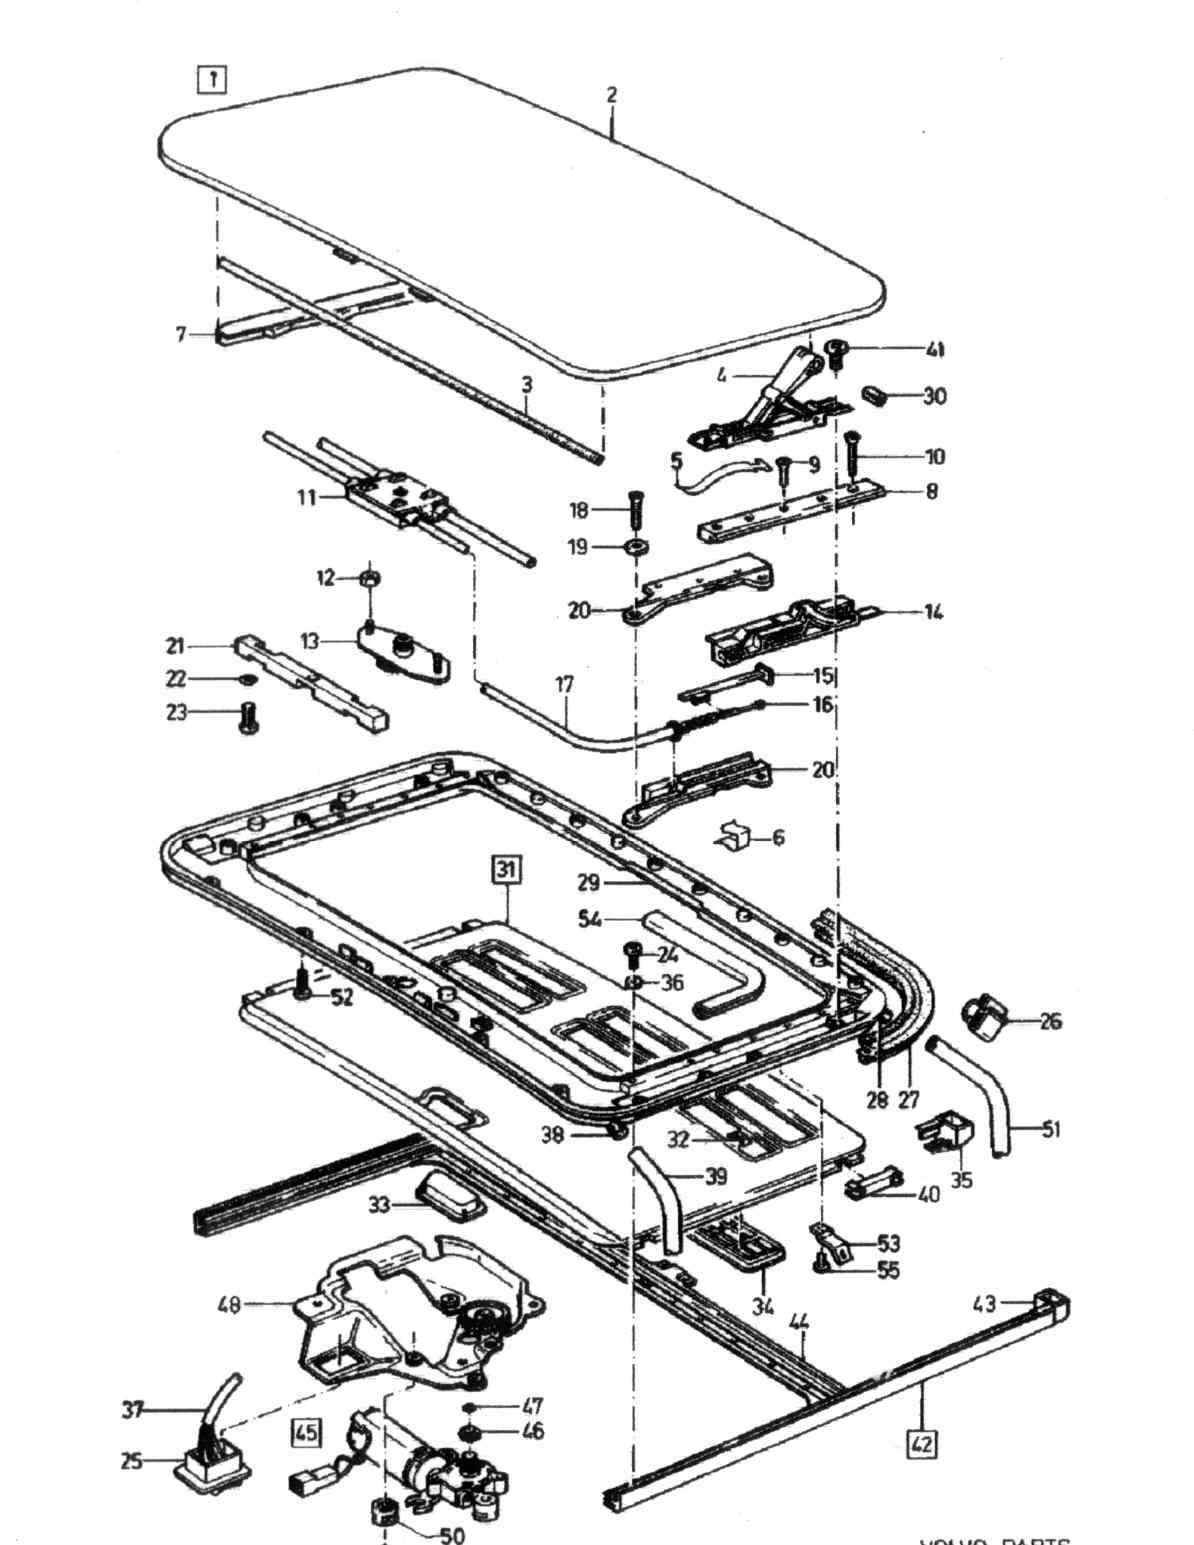 Volvo V70 Sunroof Parts Diagram. Volvo. Auto Wiring Diagram